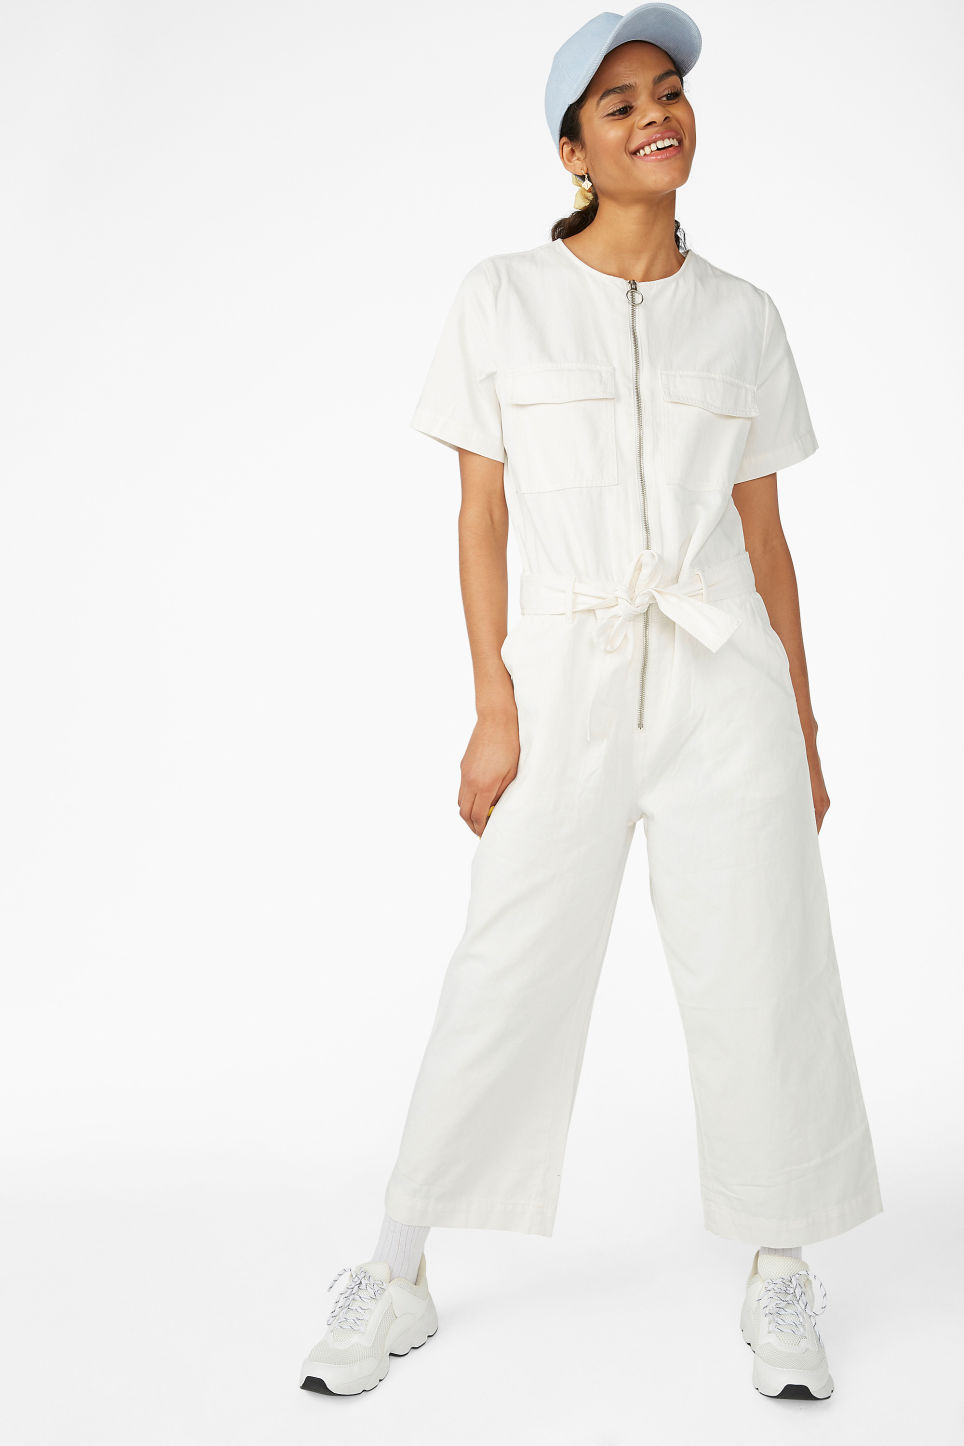 Monki Utility Jumpsuit - This white boiler suit from Monki is one of my favourites, as it takes a more unusual route by scrapping the collar completely. It makes it look more modern IMO and the built-in tie belt is a nice touch.